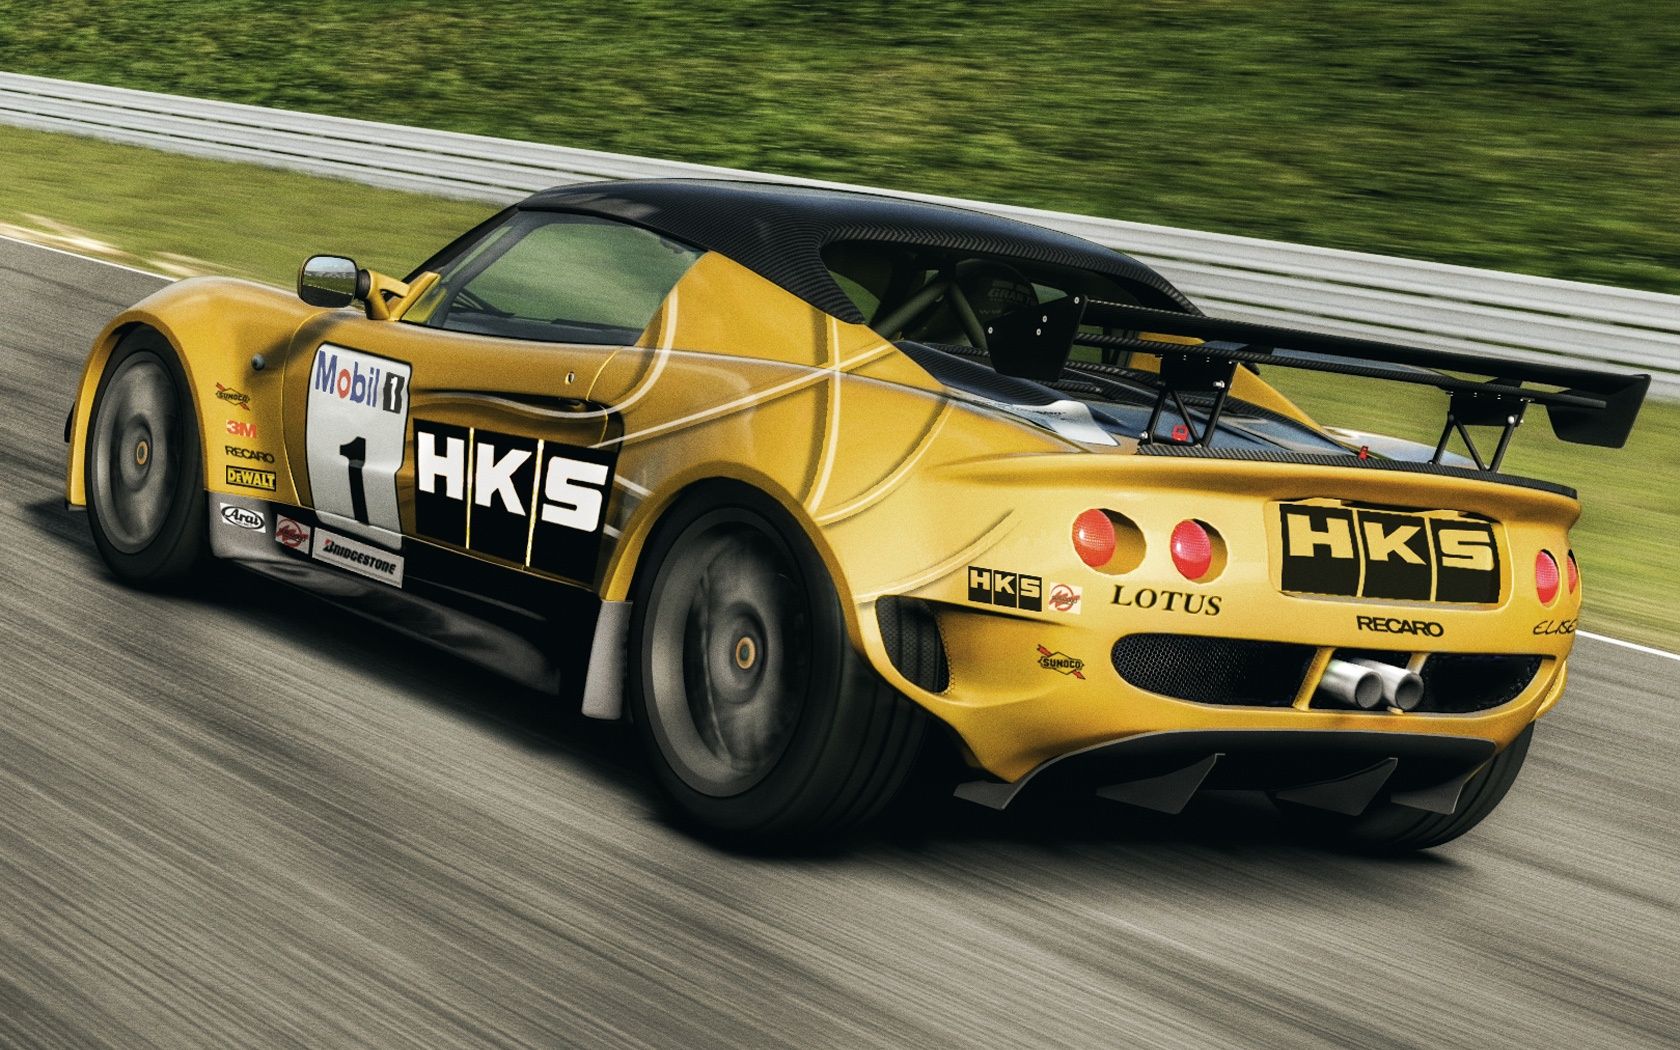 Lotus Elise Race Car 1680x1050 Wallpaper Download Page 794953 1680x1050